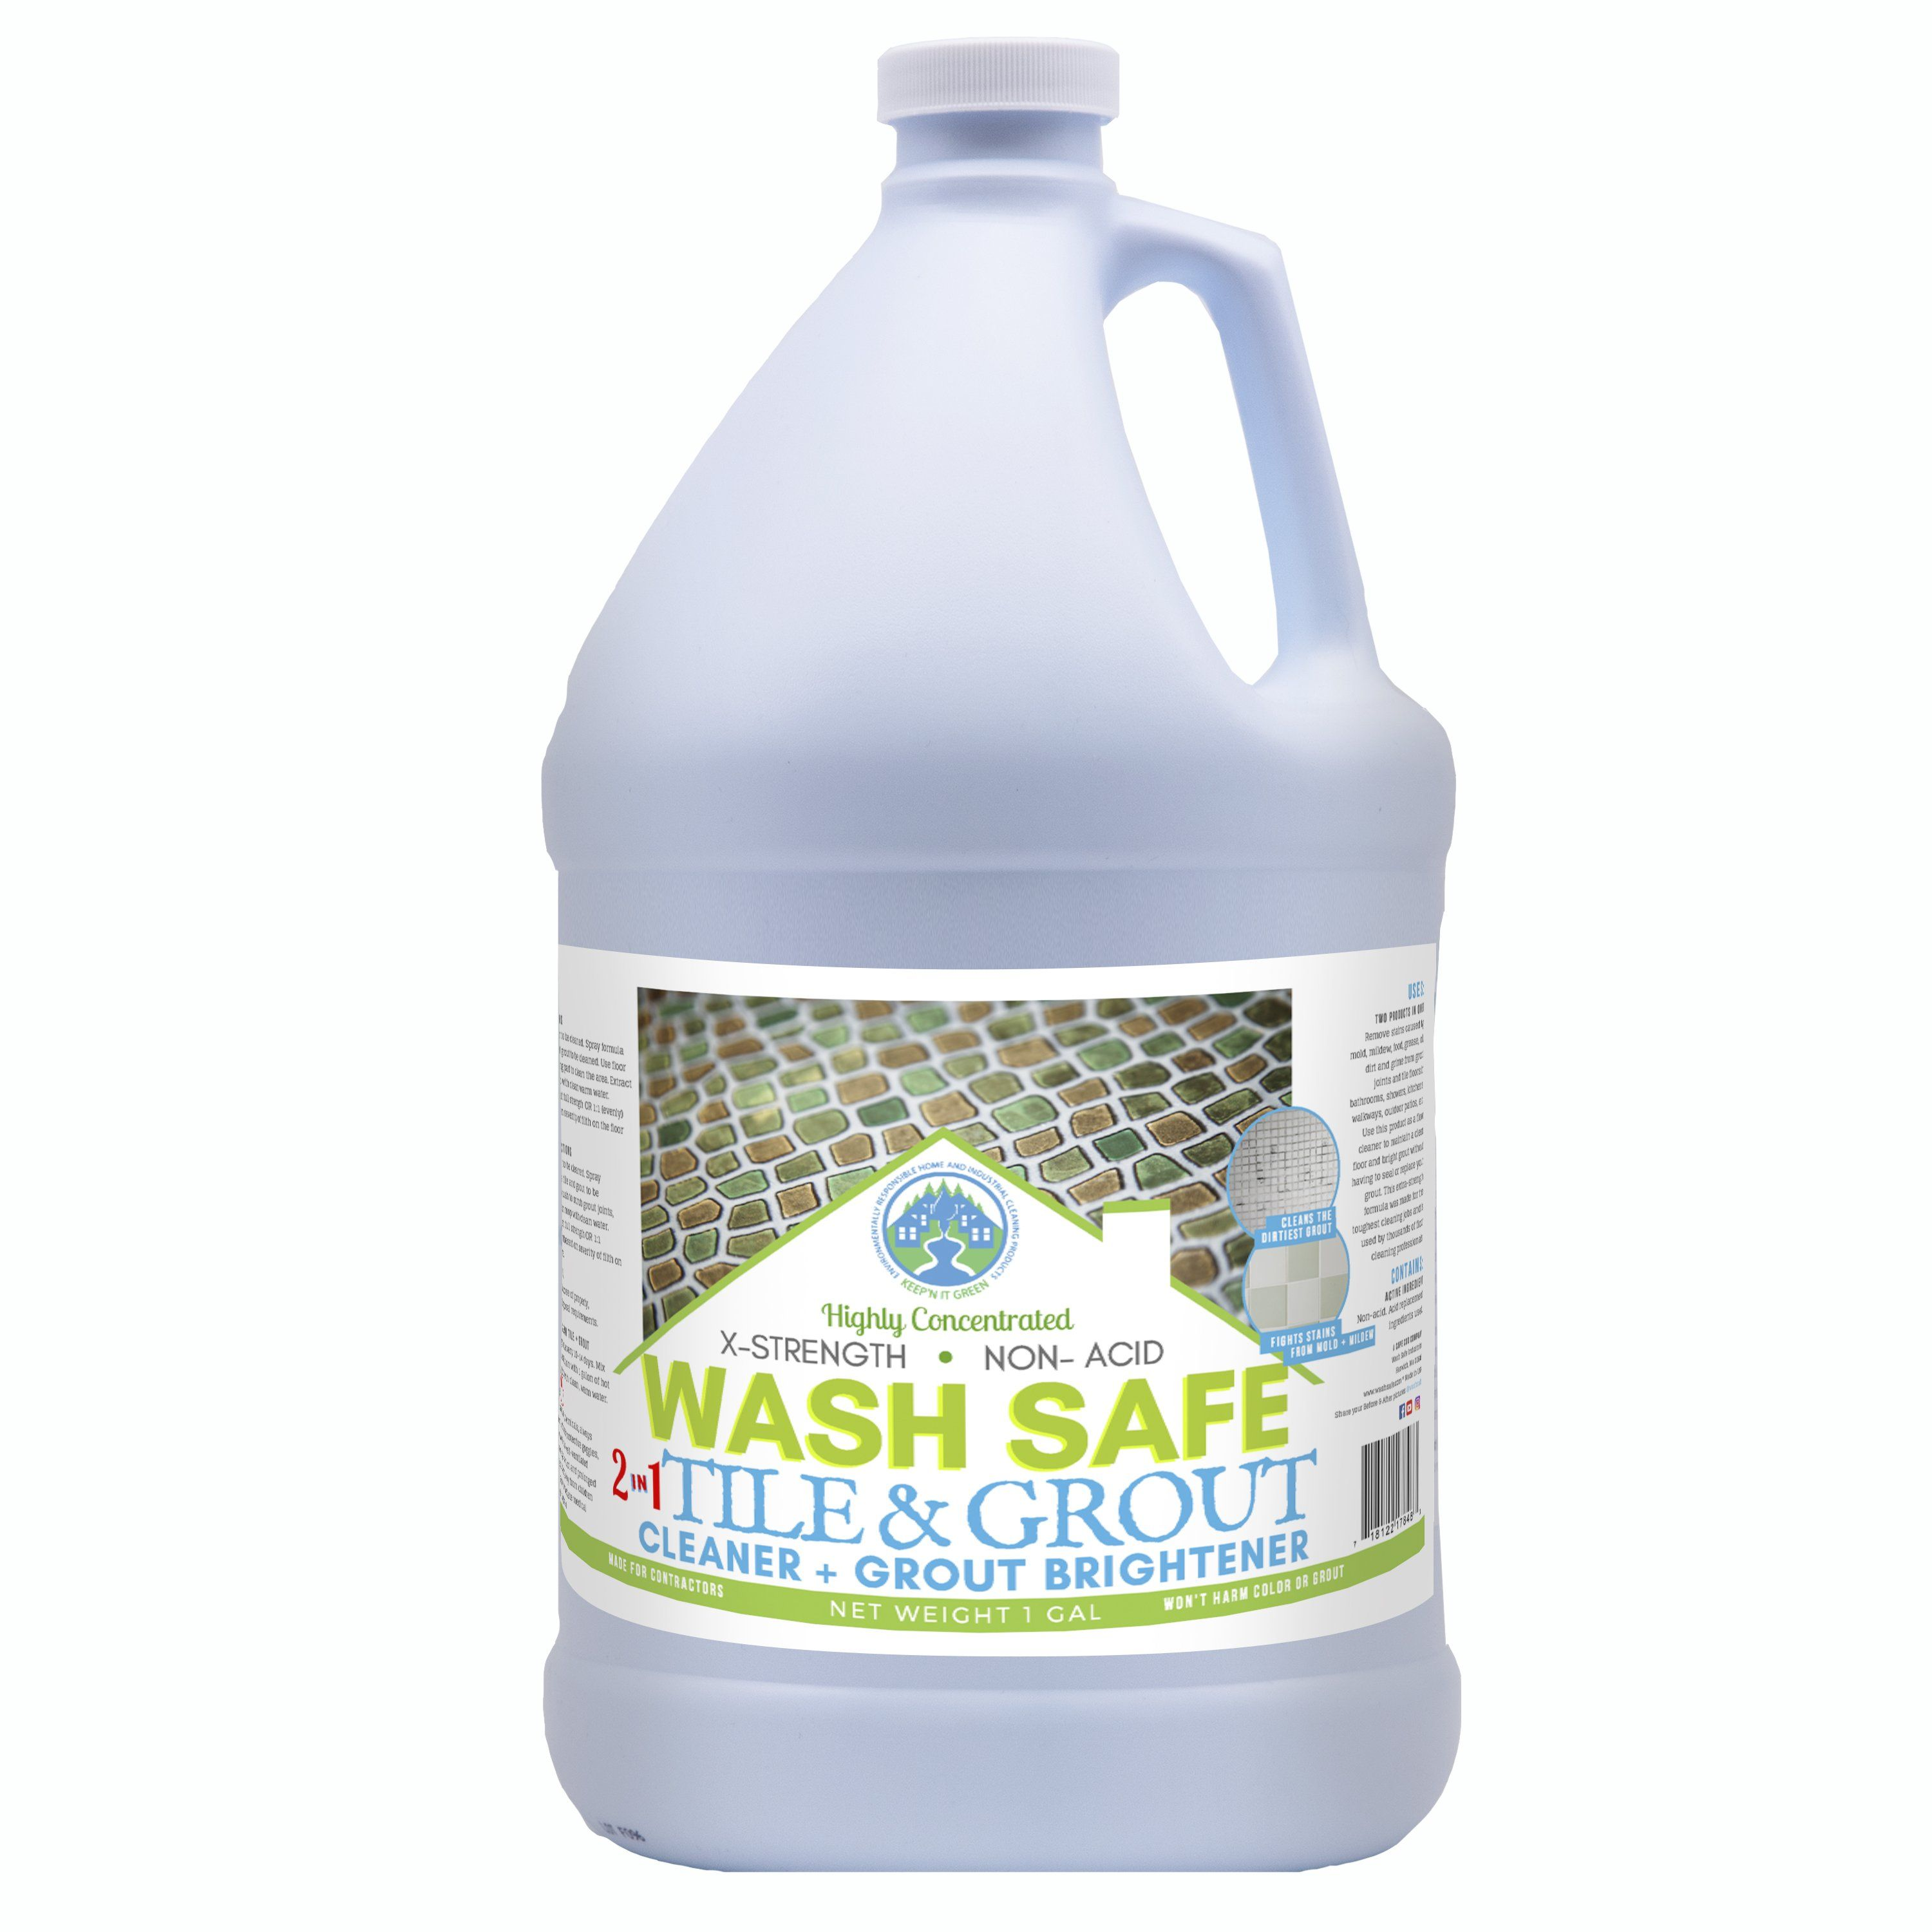 2 In 1 Tile Floor Cleaner Grout Whitener Products In 2019 Grout Cleaning Tile Floors Clean Tile Grout